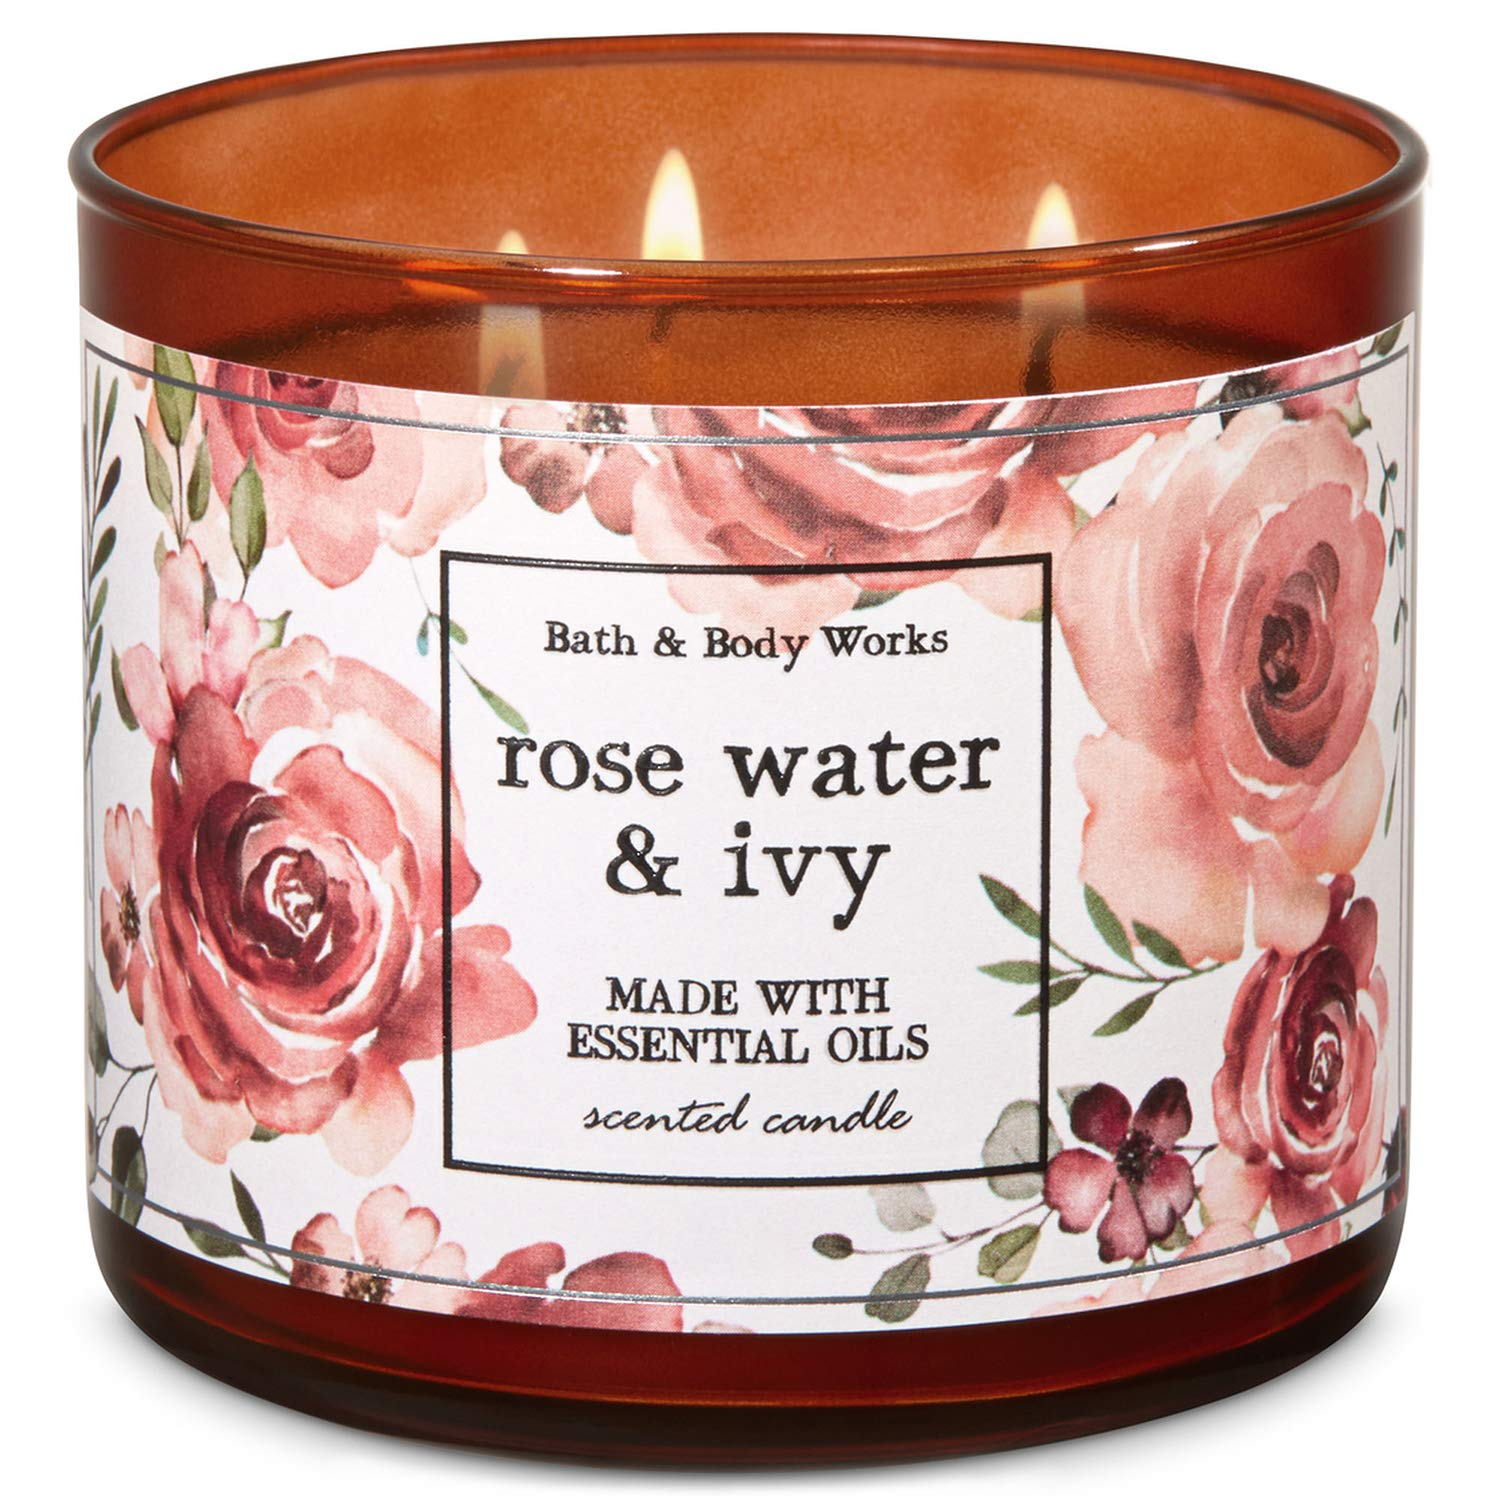 Bath And Body Works Rose Water Ivy 3 Wick Candle 14 5 Ounce 2019 Limited Edition Buy Online In Sint Maarten At Sintmaarten Desertcart Com Productid 98305722